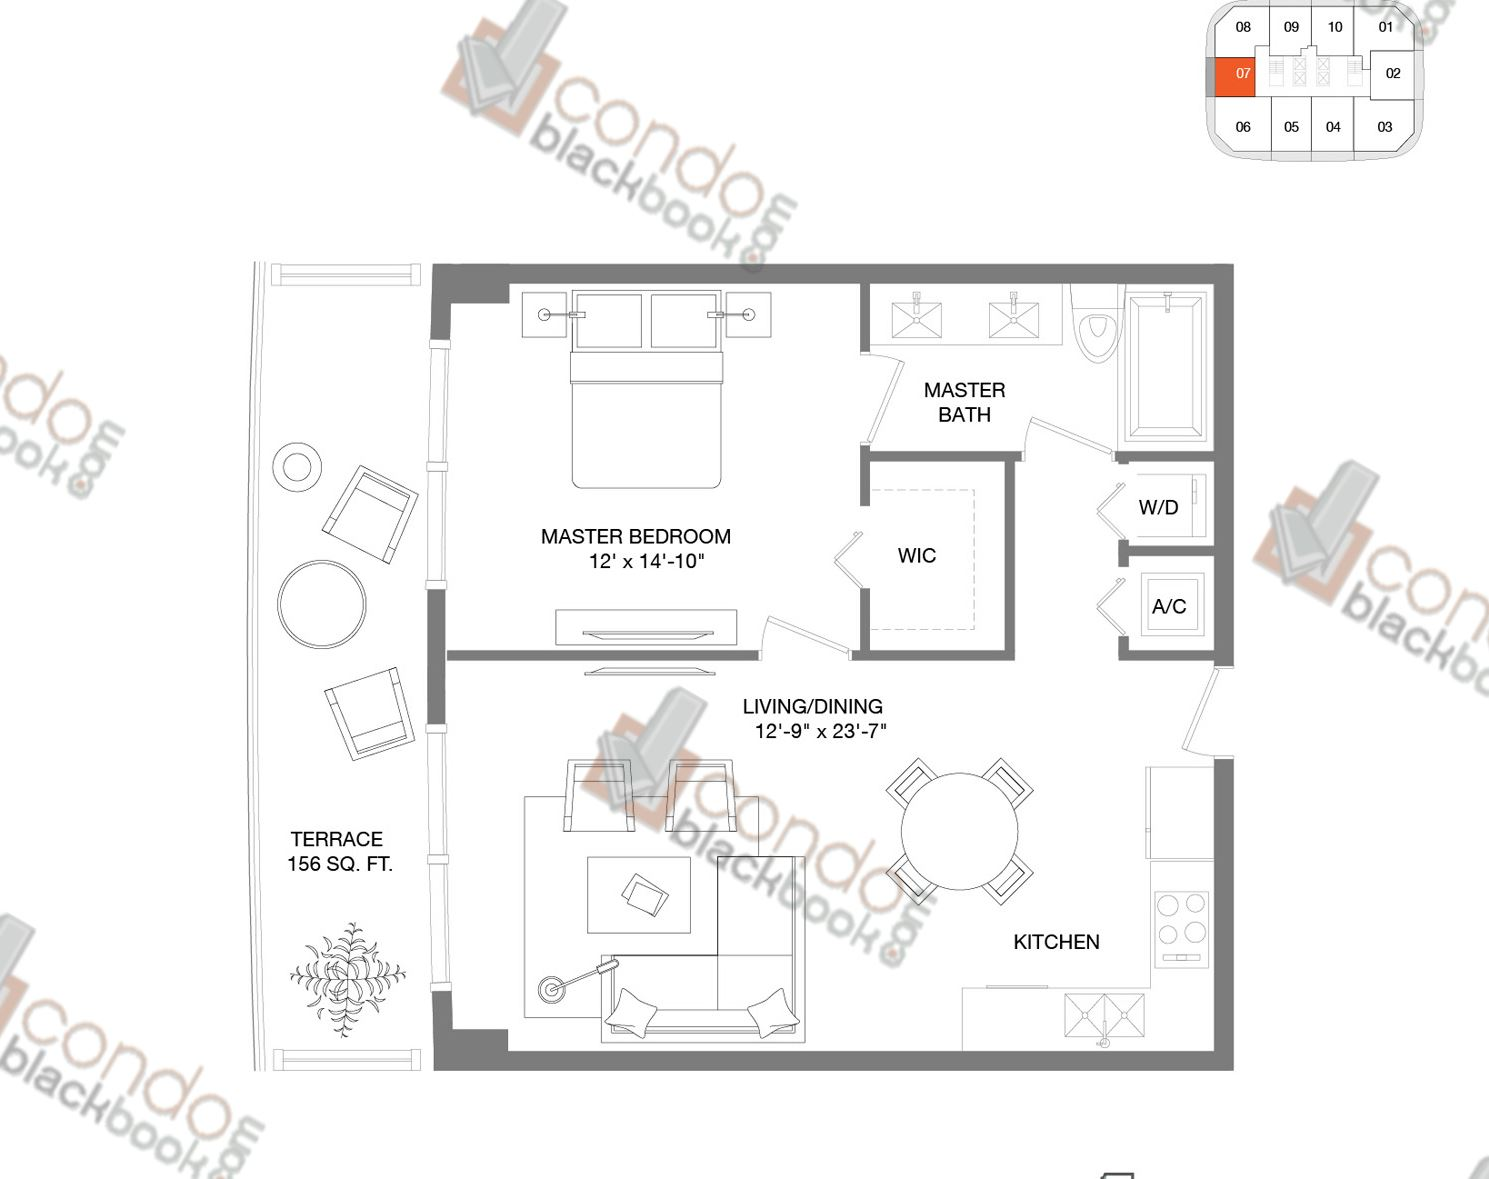 Floor plan for Brickell Heights East Tower Brickell Miami, model Residence 07, line 07, 1/1 bedrooms, 676 sq ft